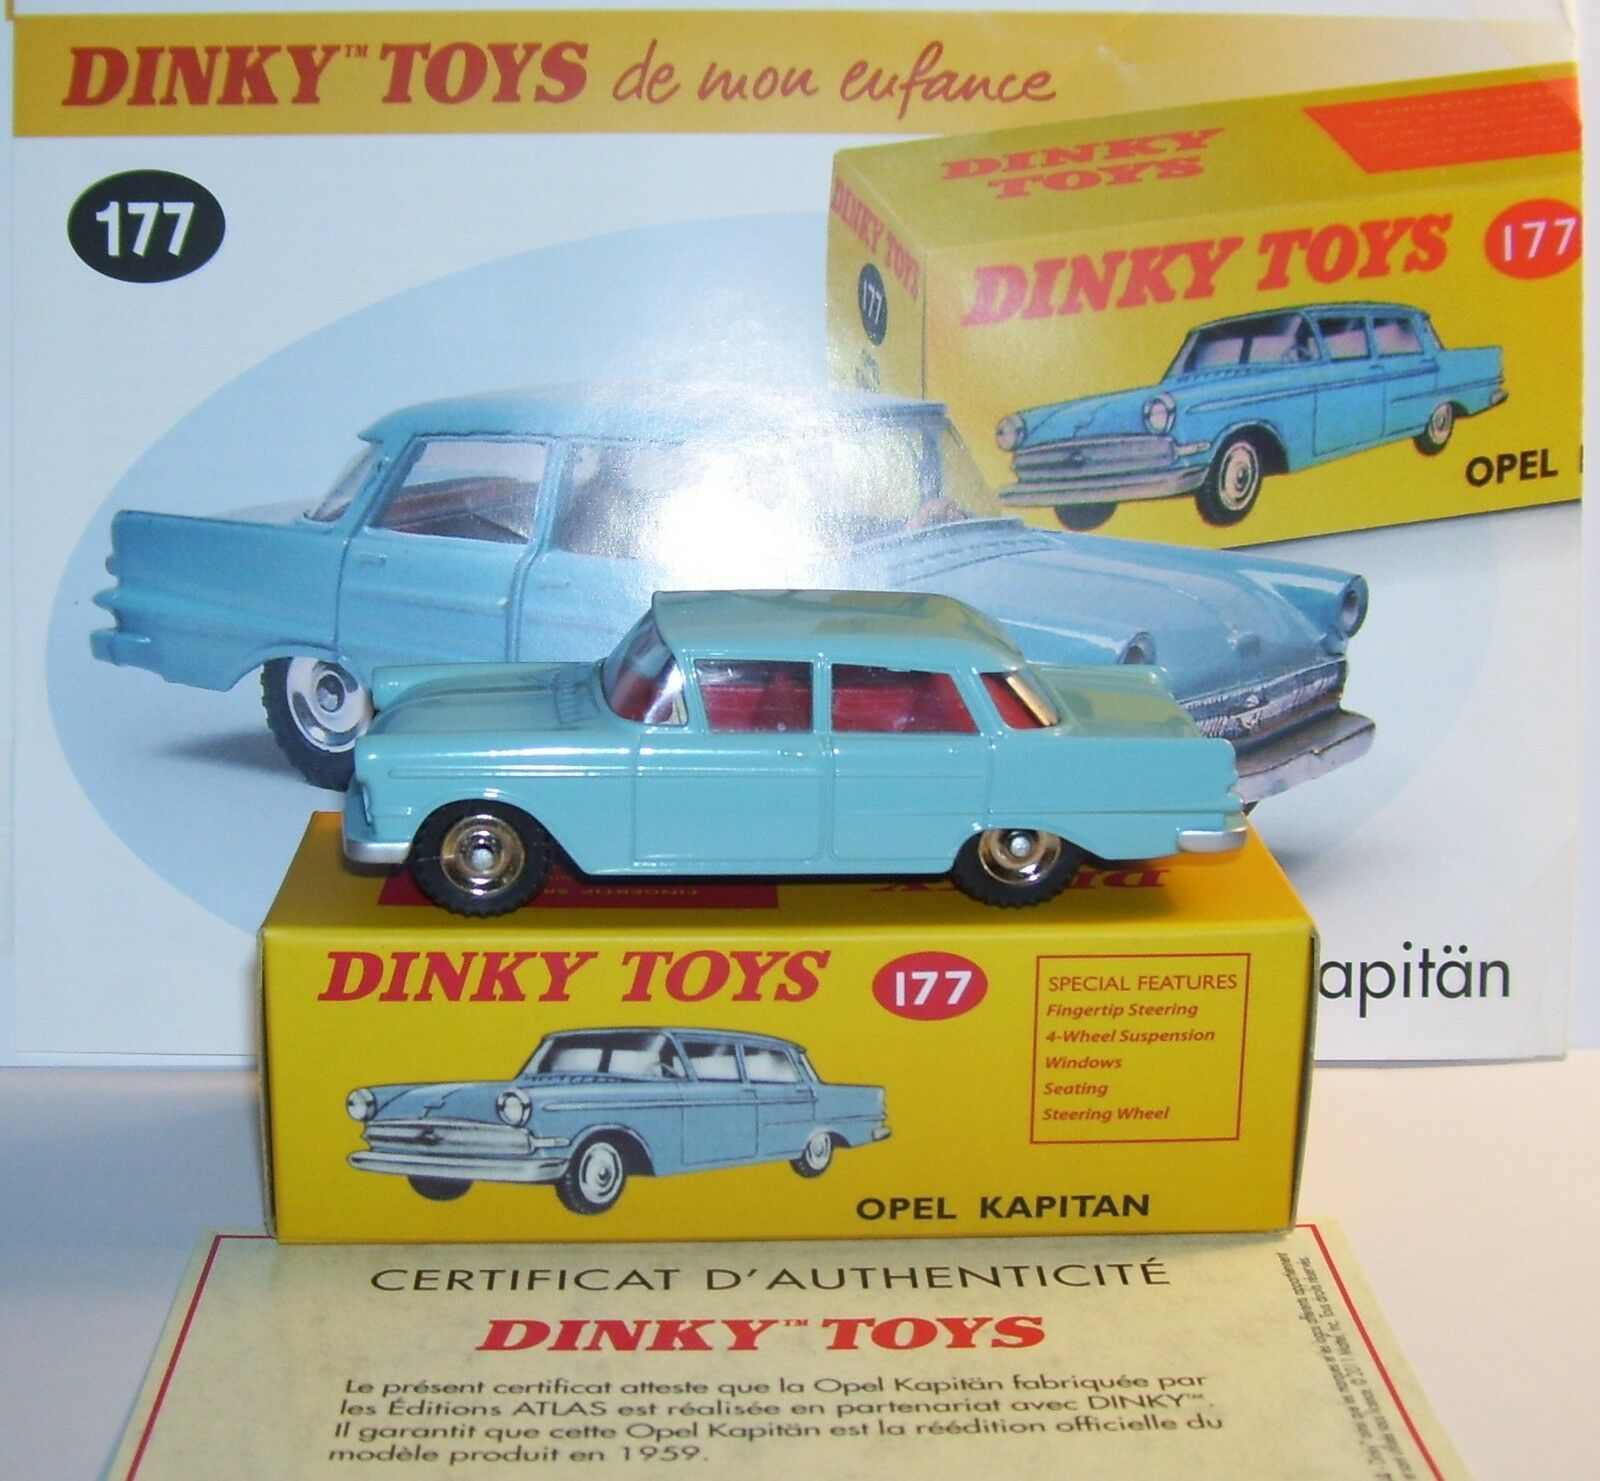 DINKY TOYS ATLAS OPEL KAPITAN LIGHT blueE 1 43 REF 177 IN BOX b